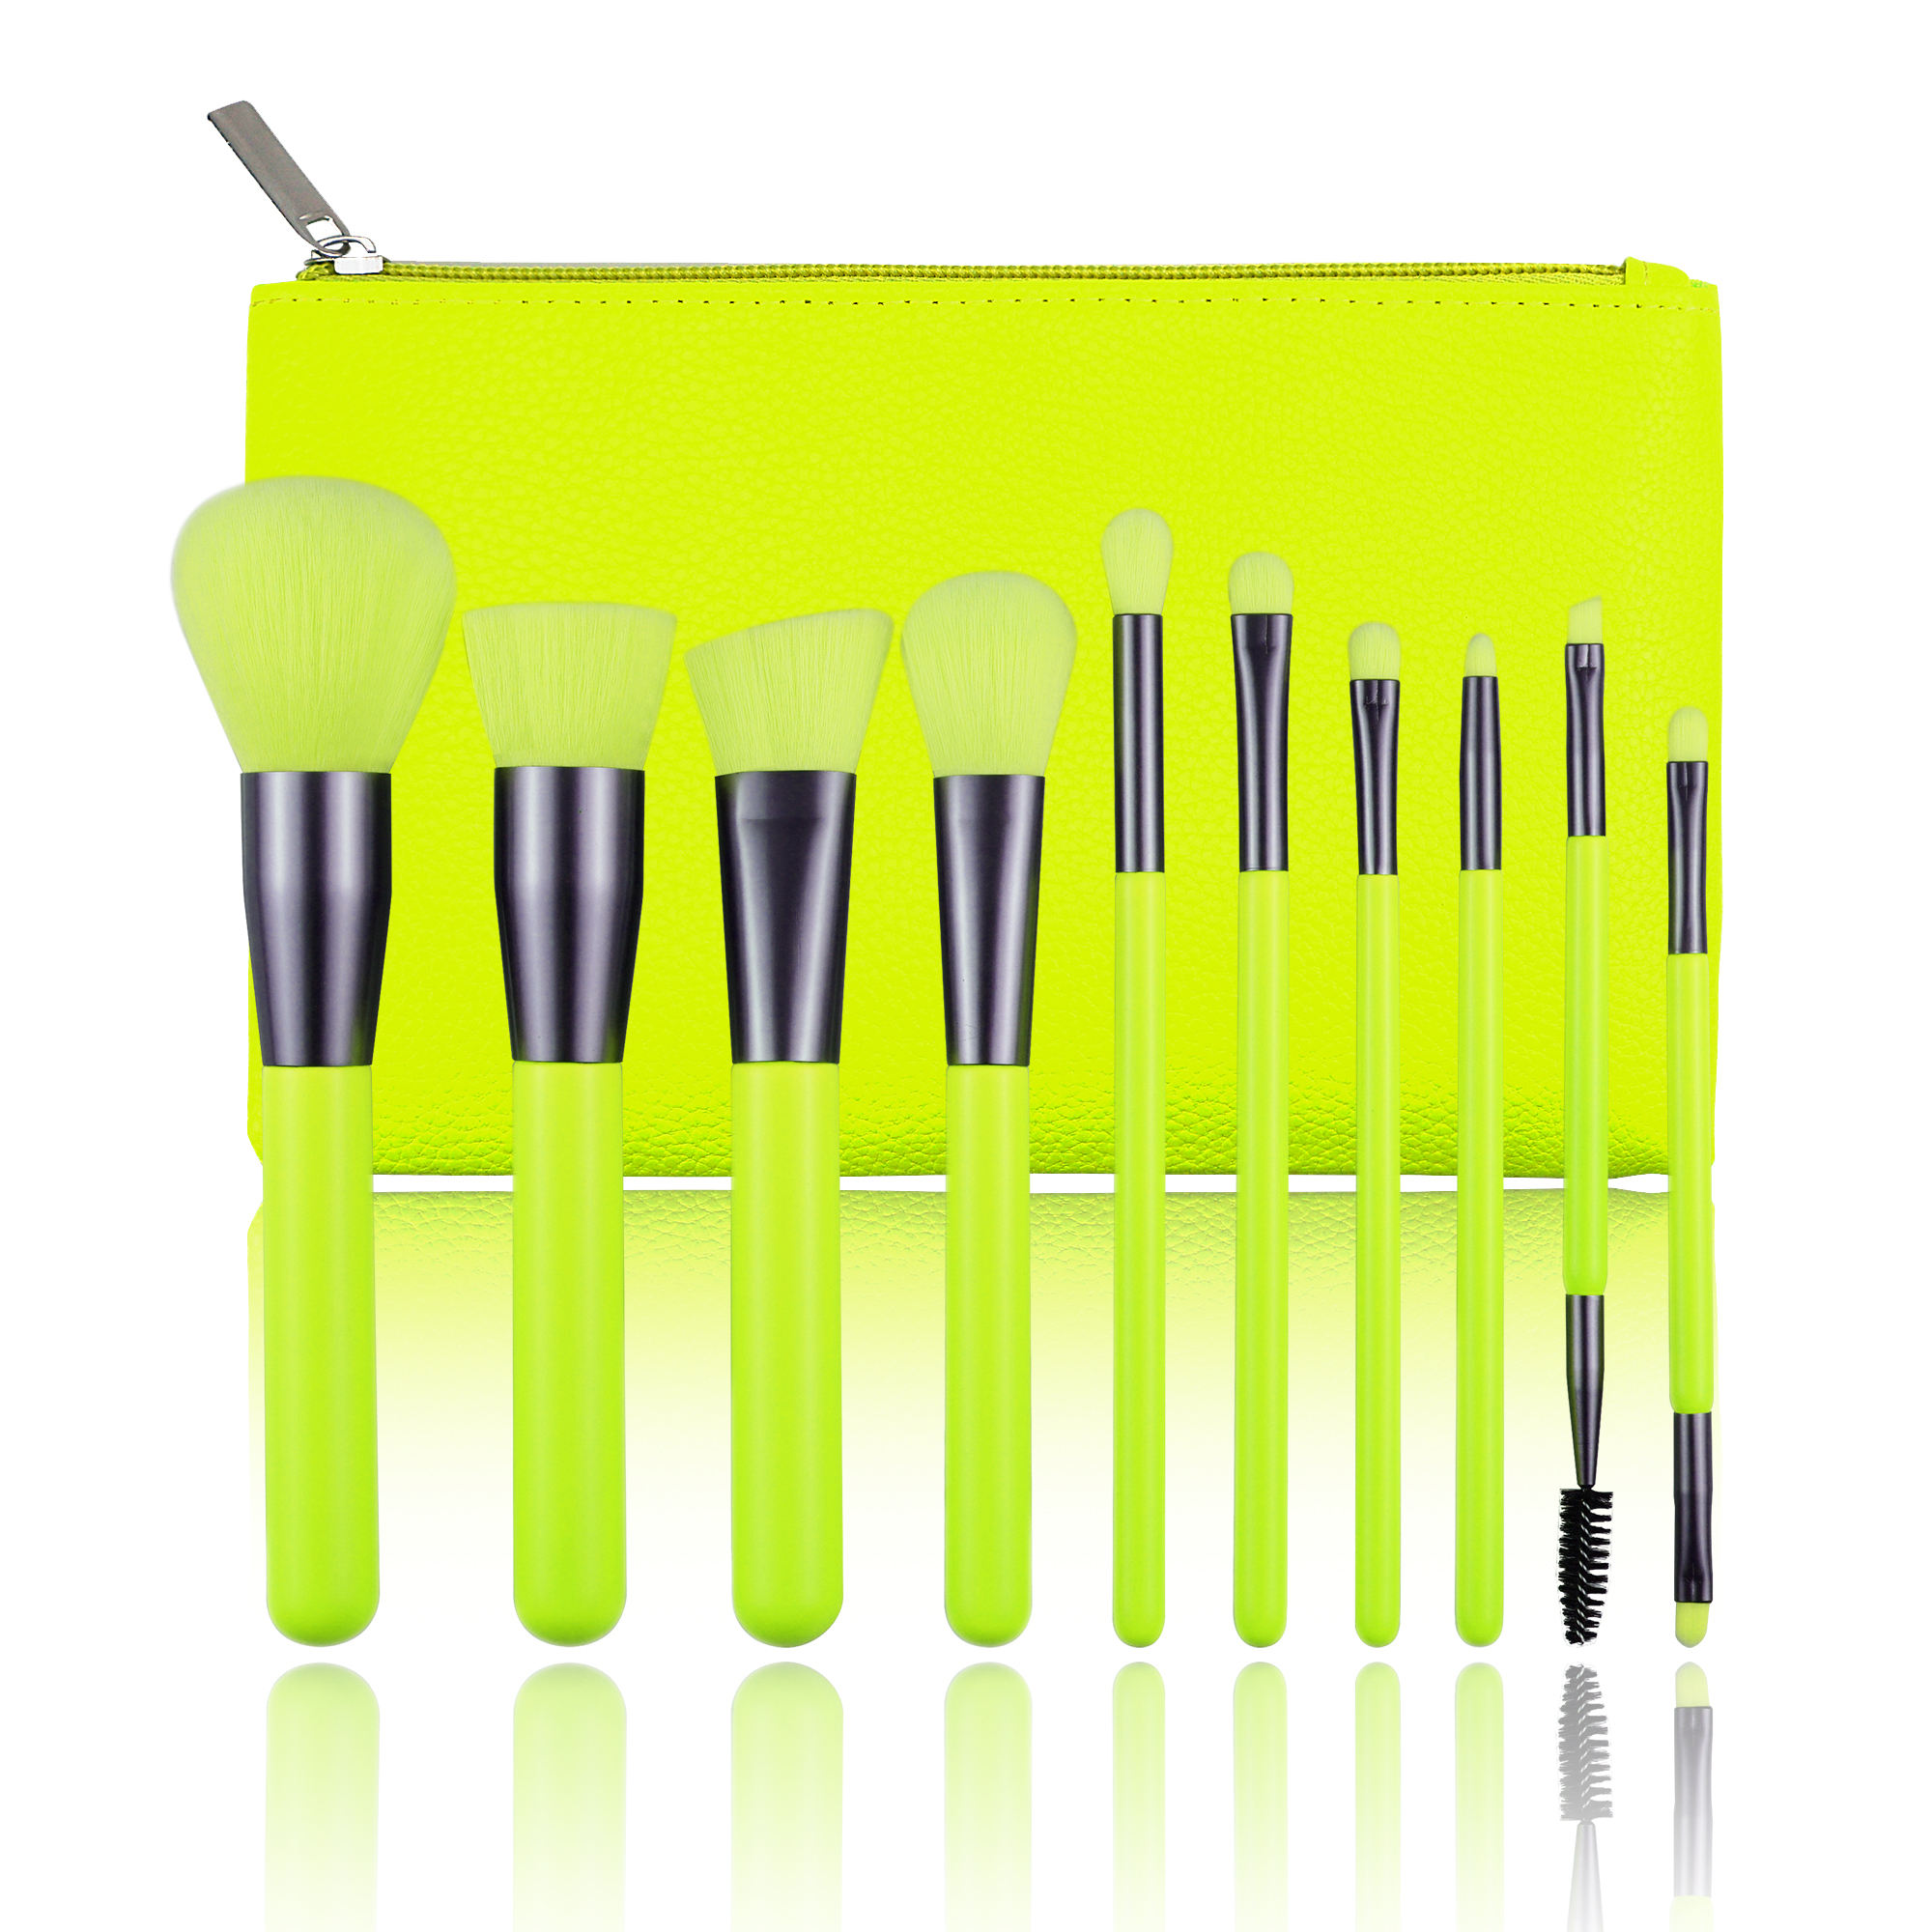 10pcs Best Selling Private Label Brush Logo Neon Make Up Brushes Sets Makeup Wholesale